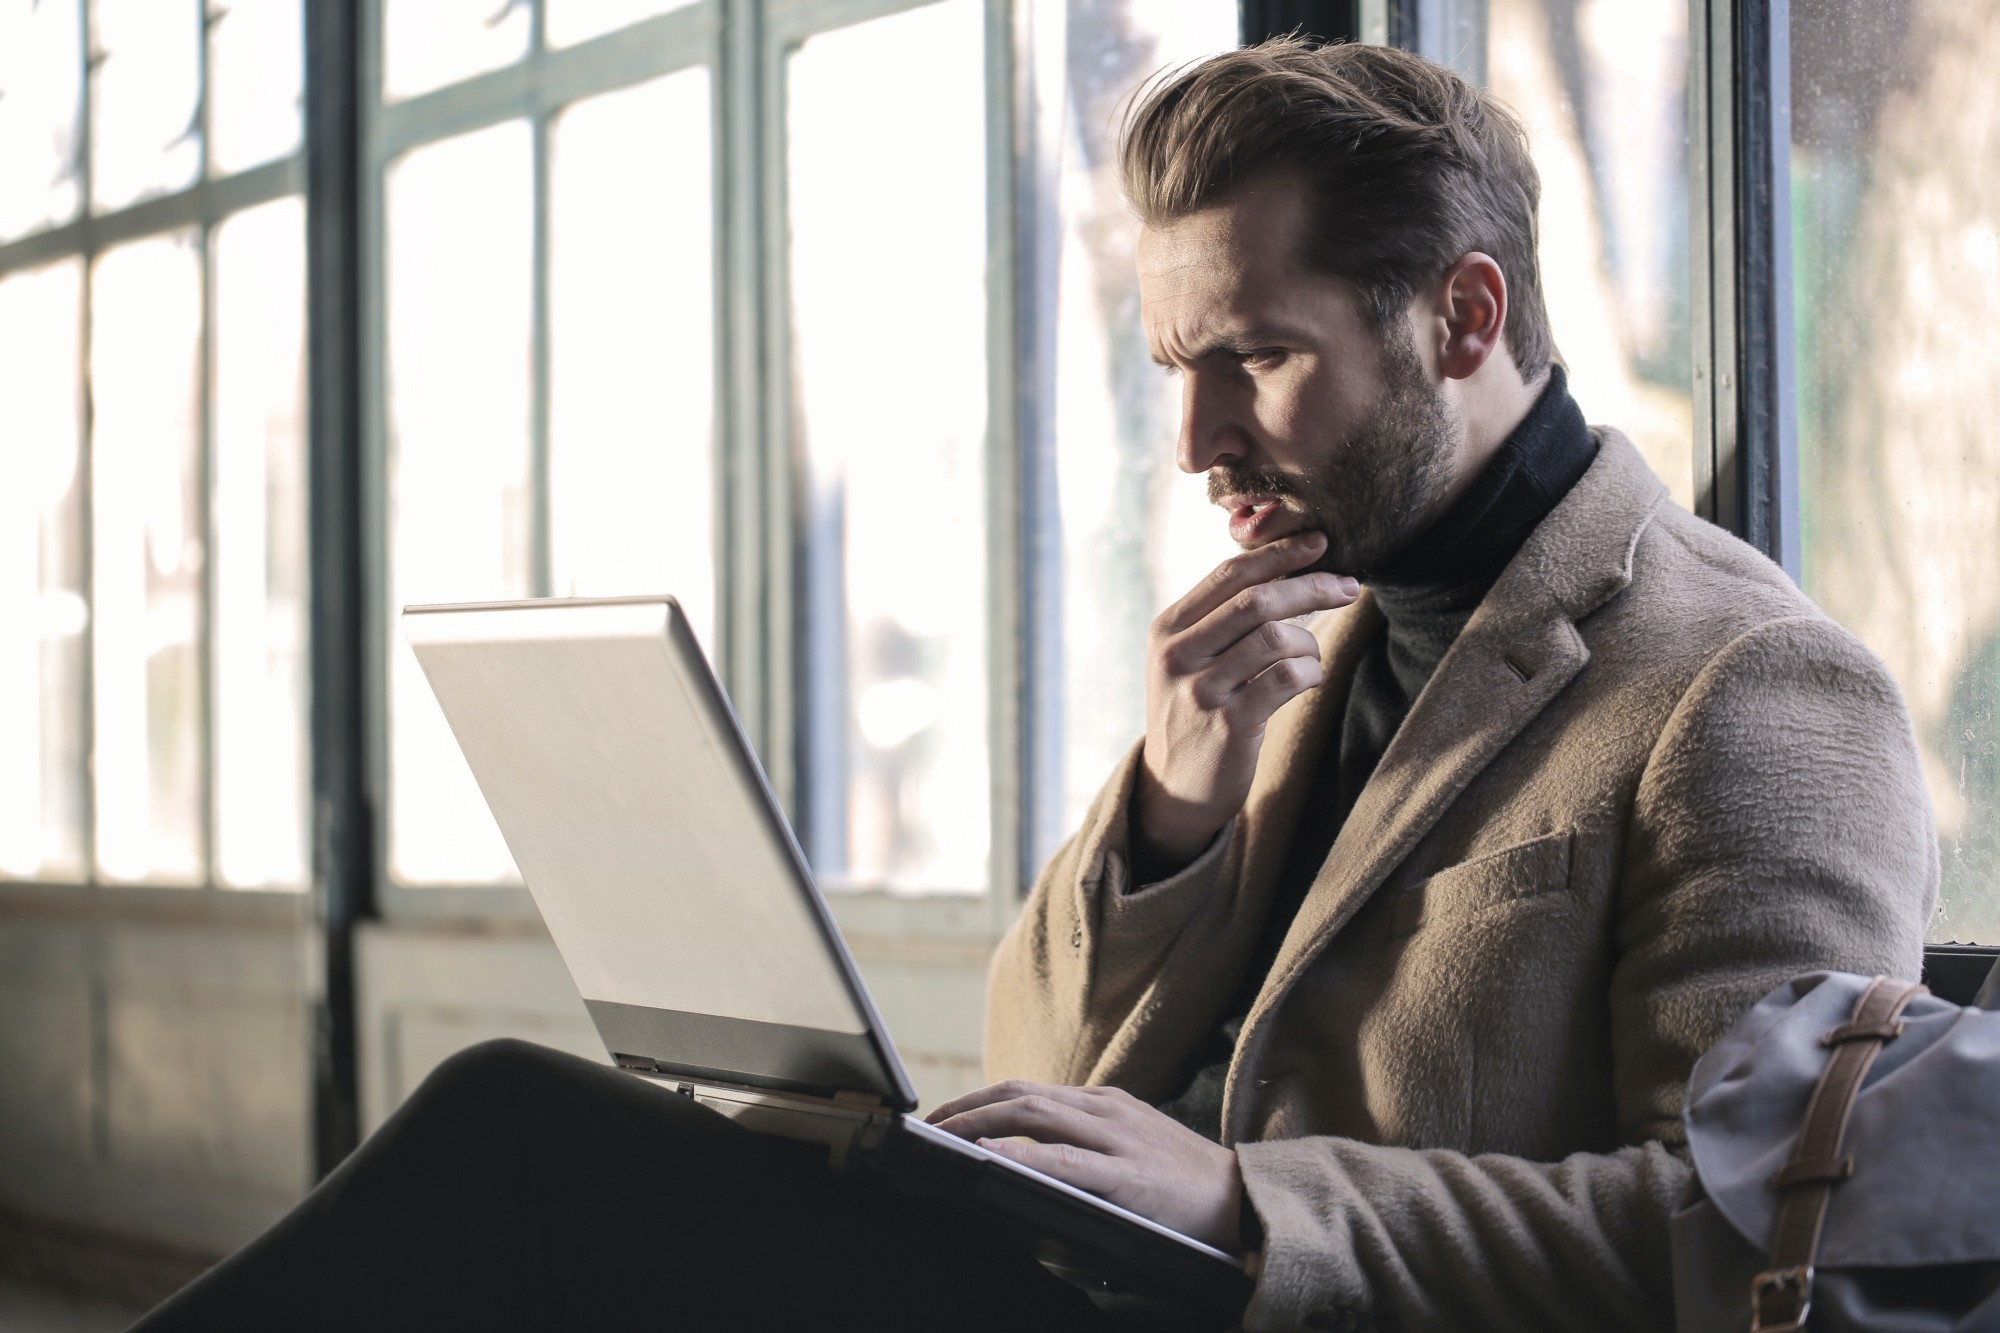 Man sitting with laptop staring pensively at the laptop screen.